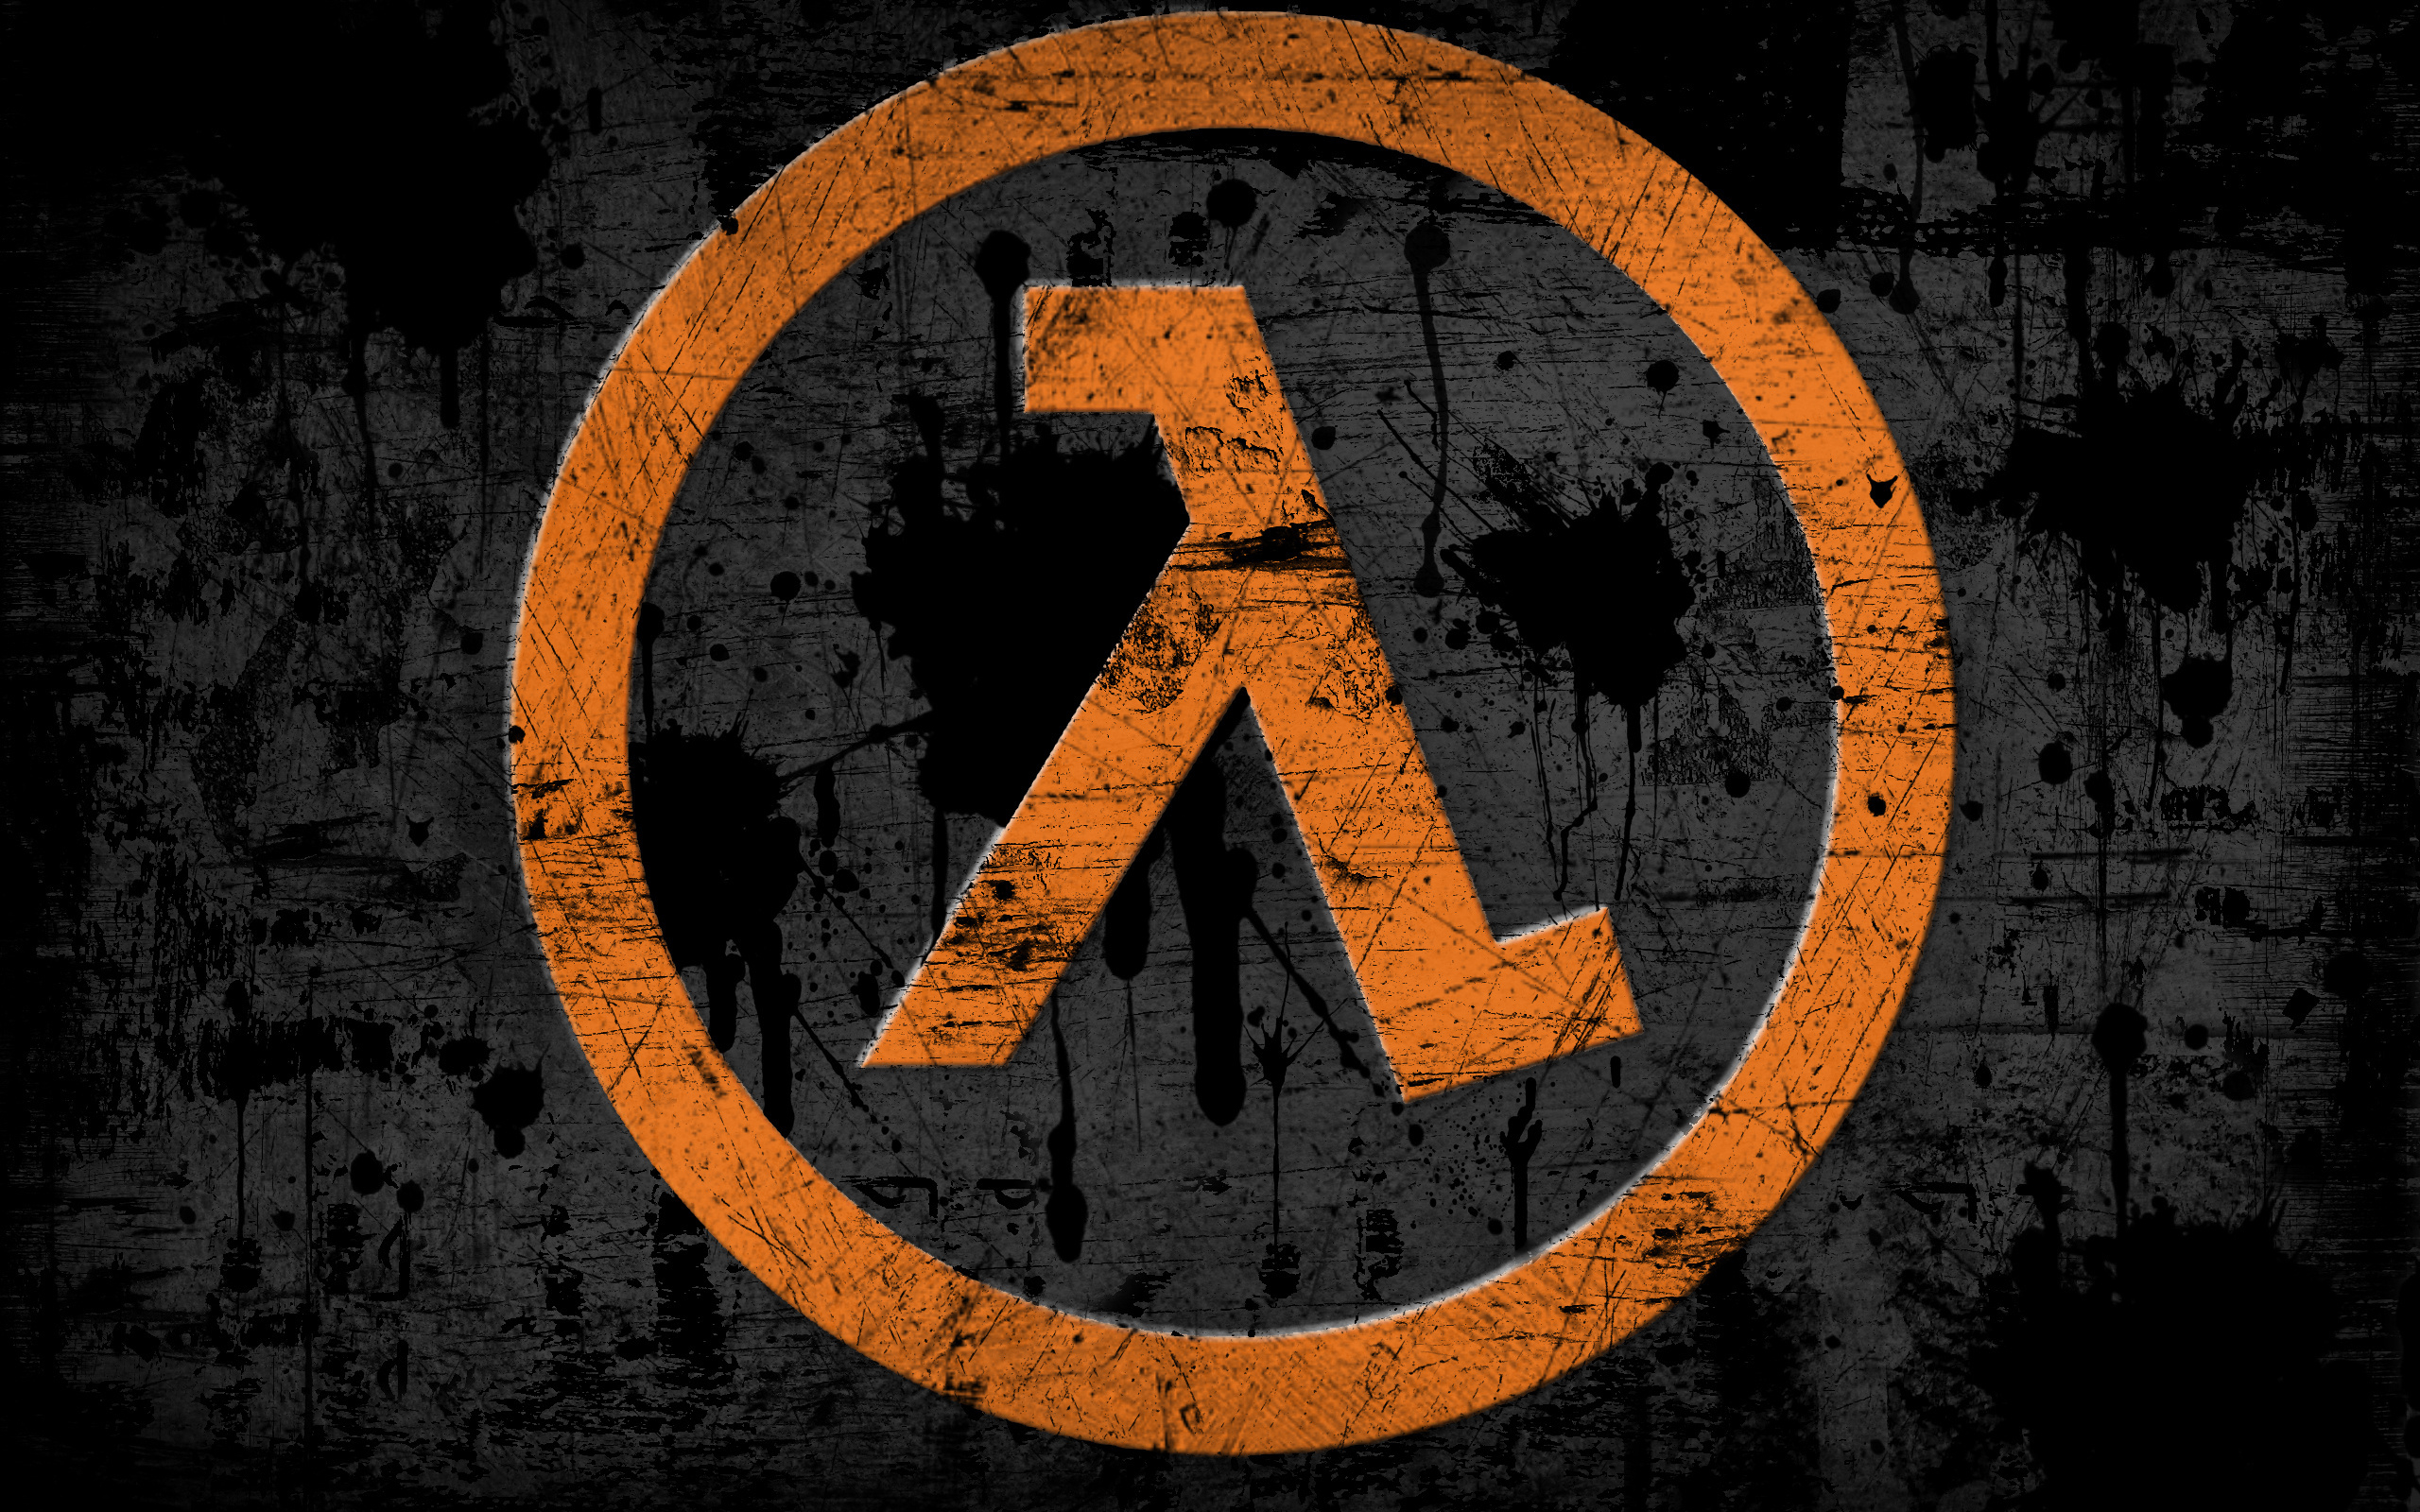 Half Life Games Are Free To Play On Steam Until March